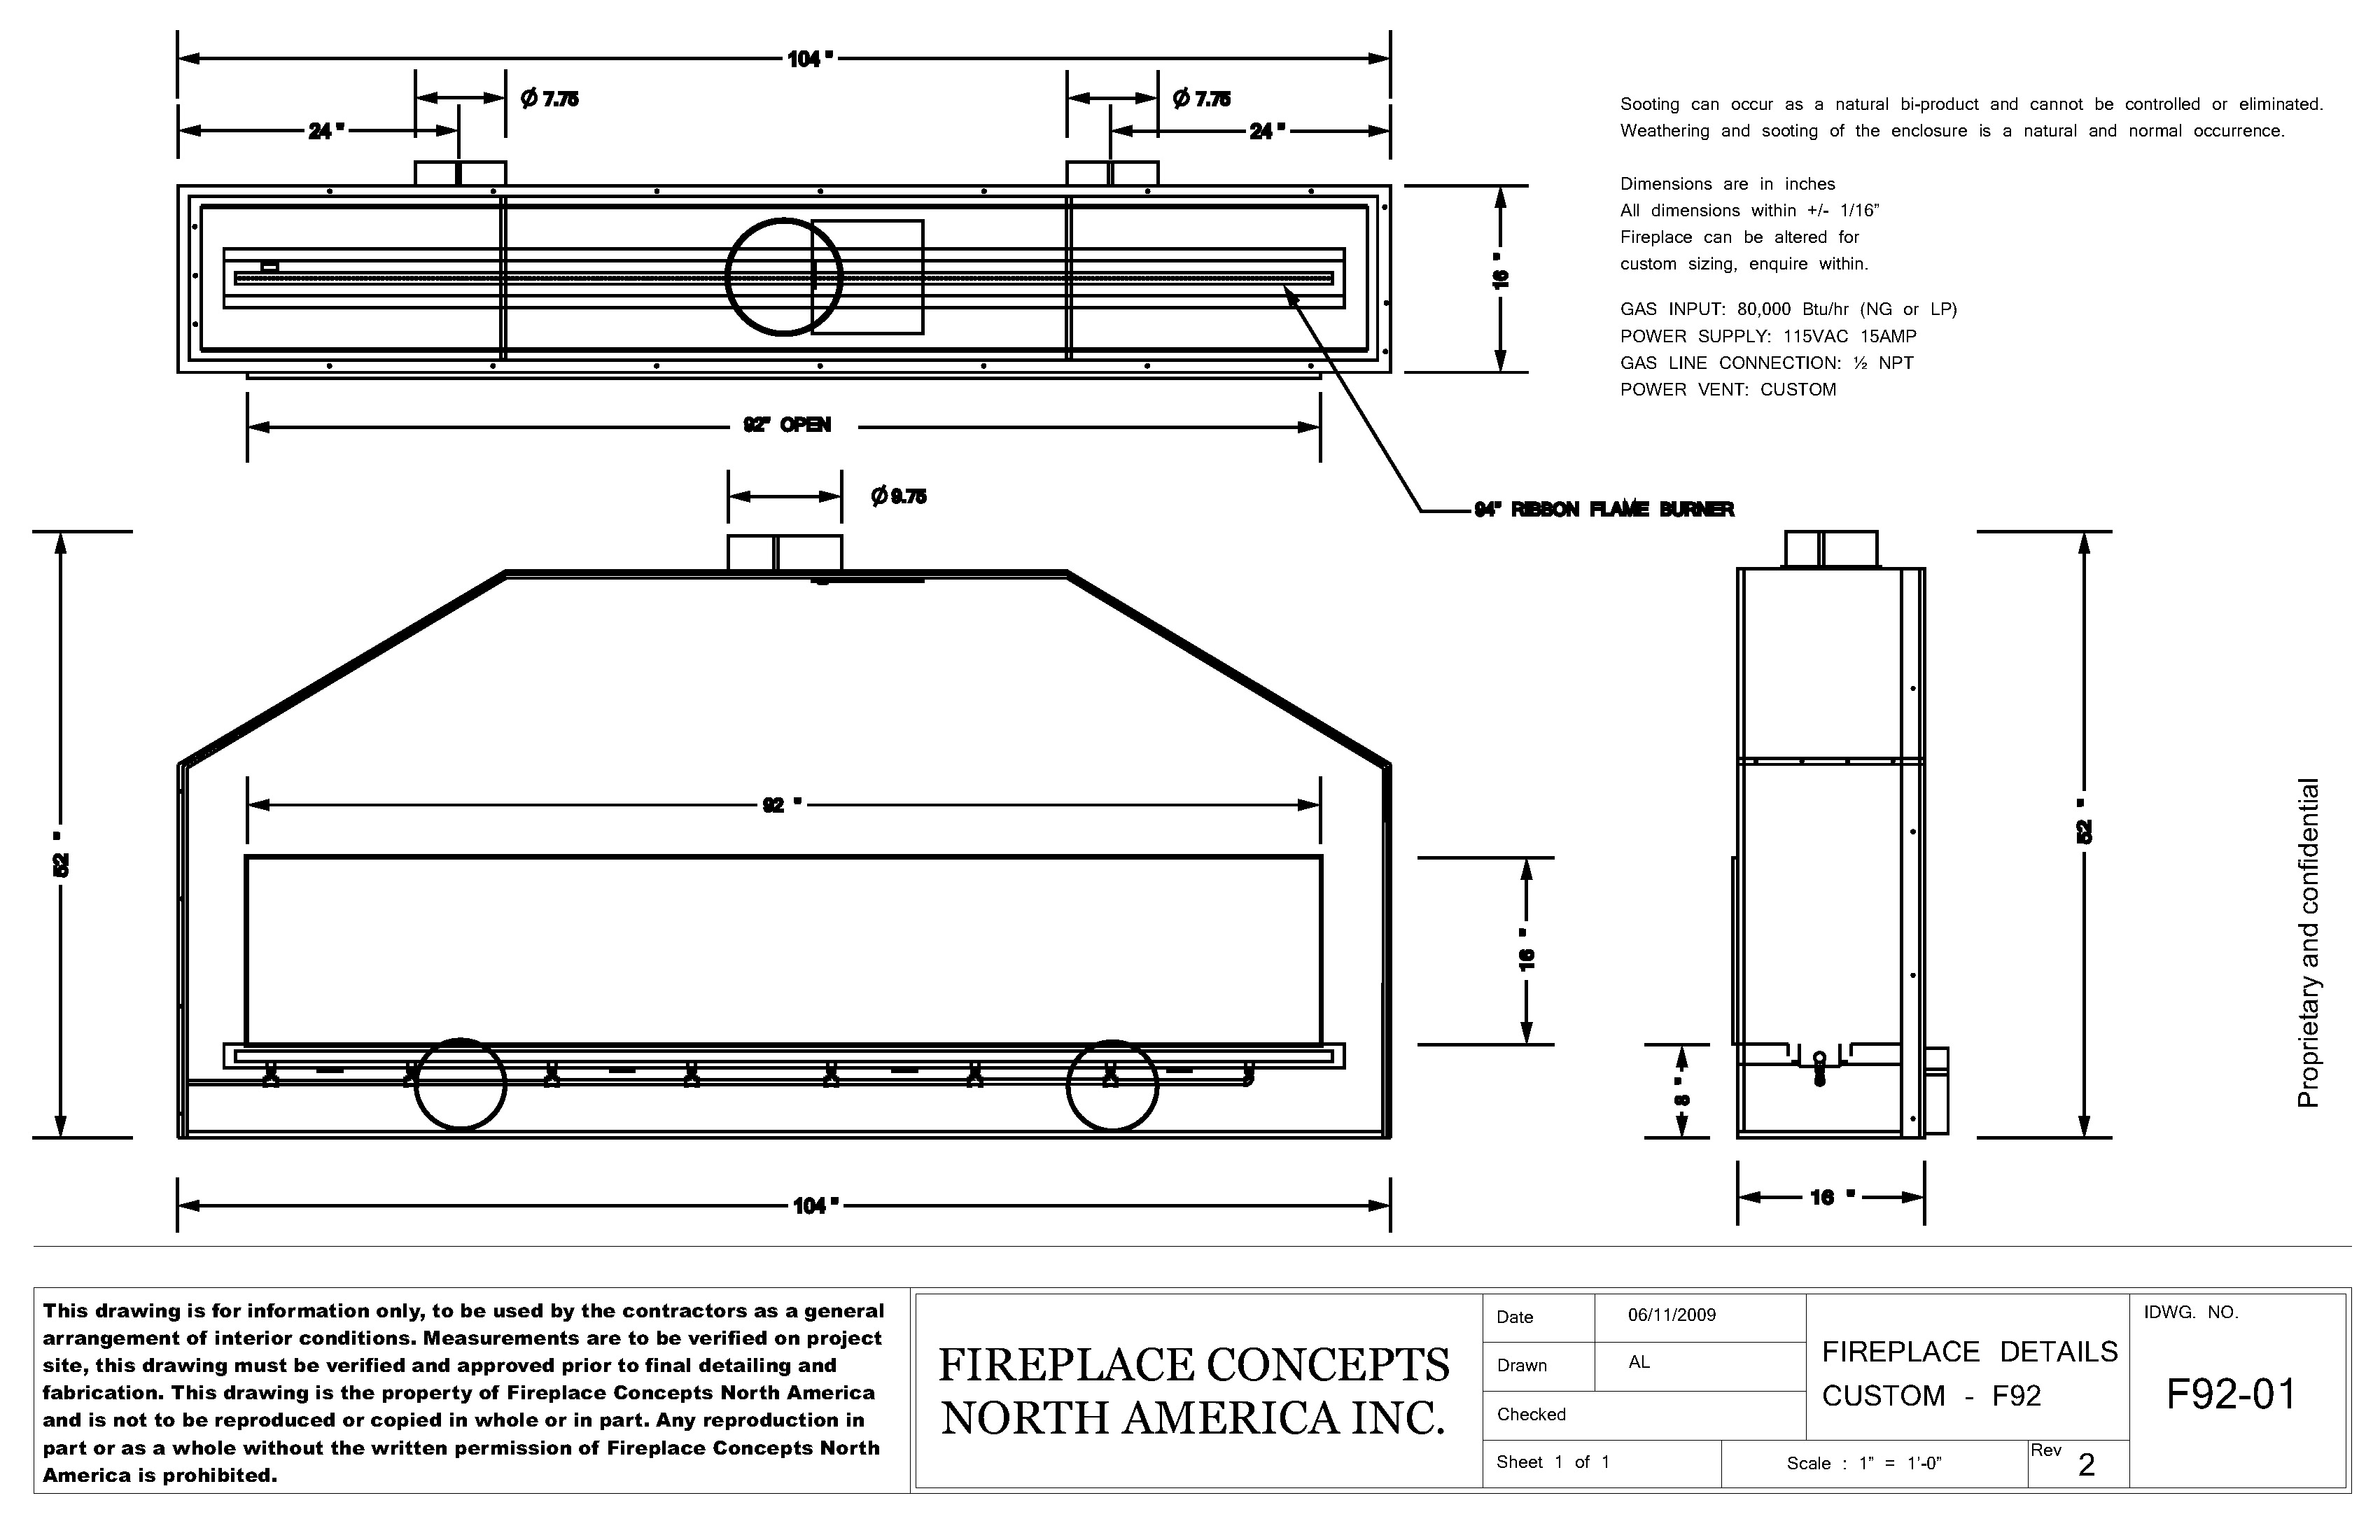 fireplace specifications images reverse search